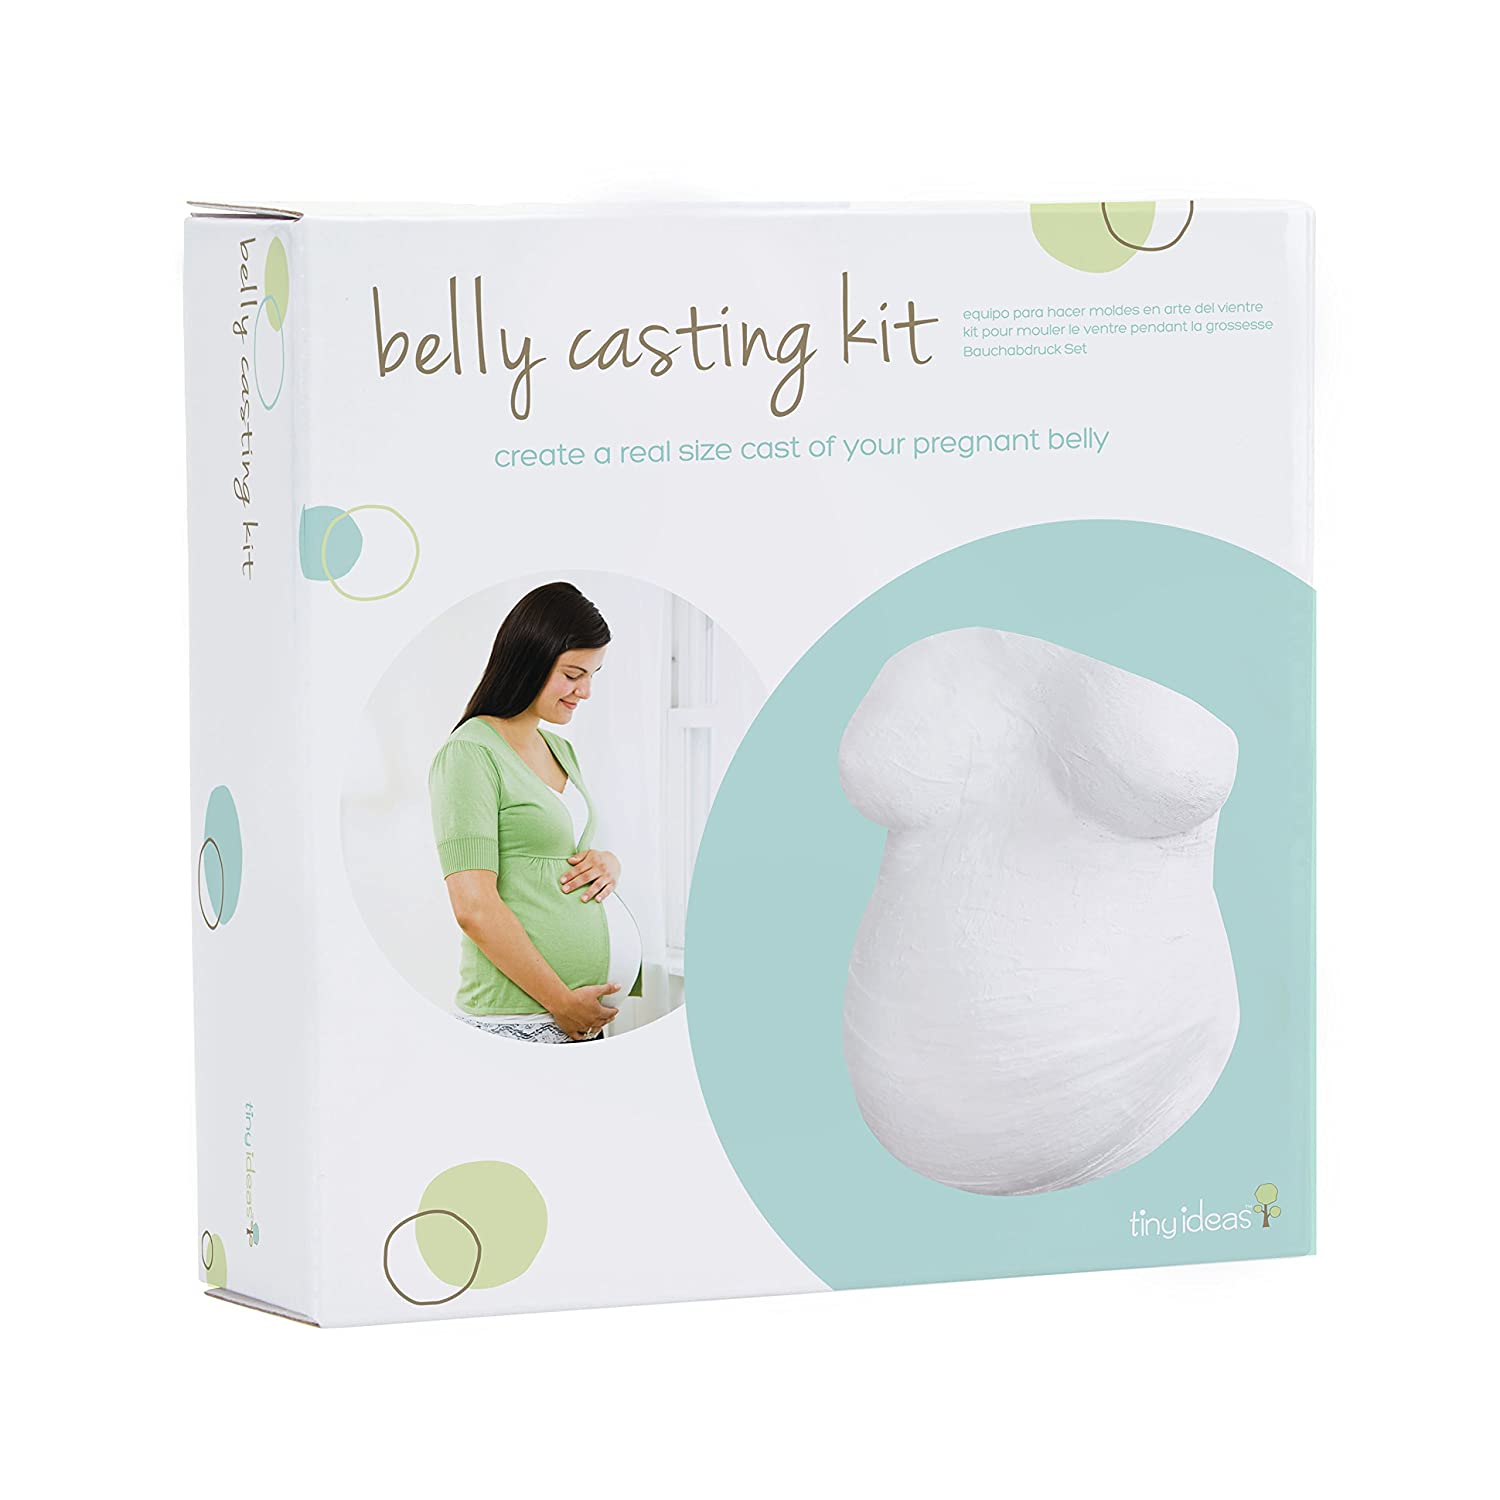 Tiny ideas 96140 Belly Casting Kit - Gipsabdruck Set Babybauch